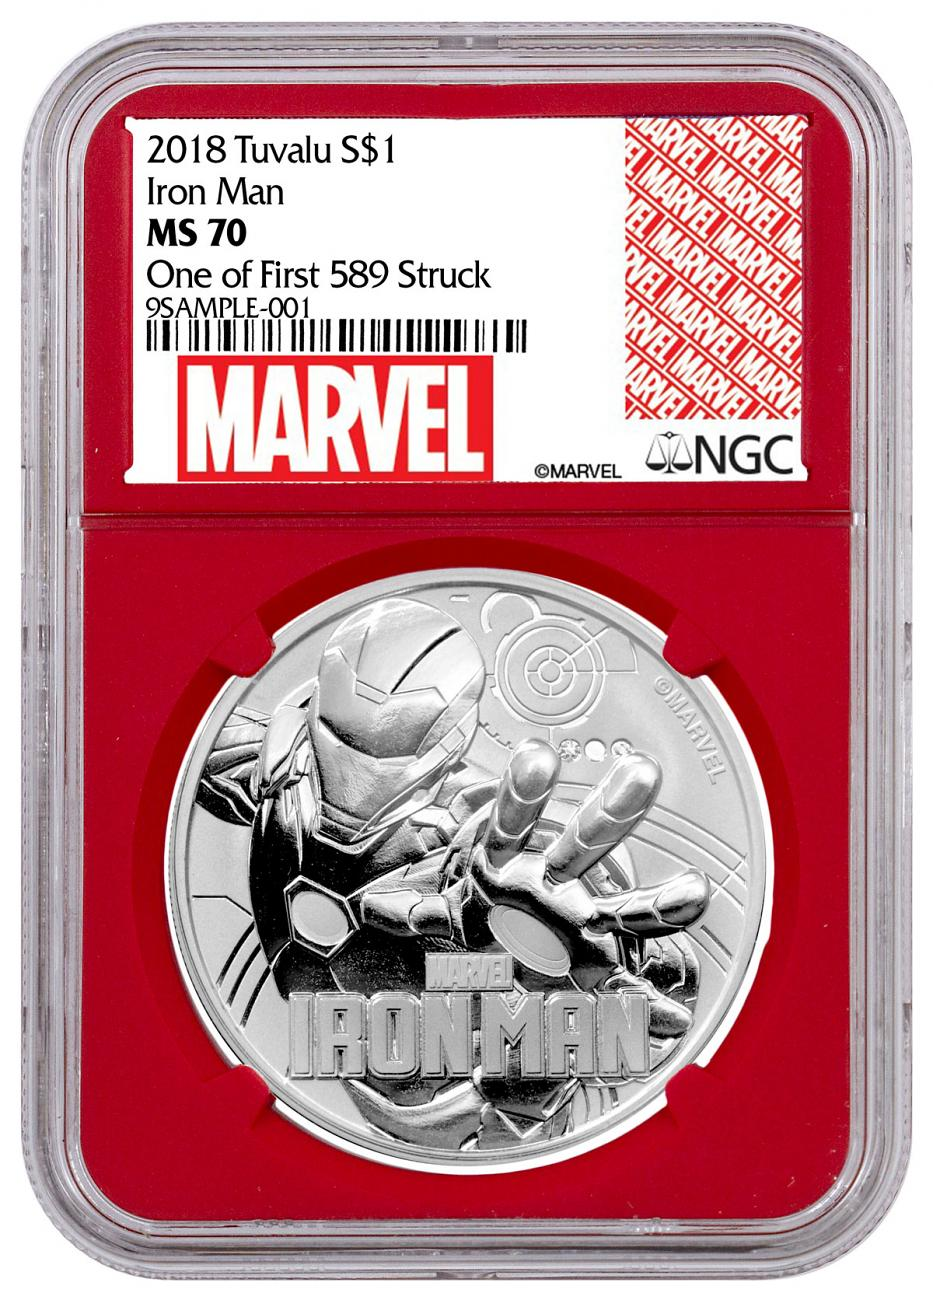 2018 Tuvalu Iron Man 1 oz Silver Marvel Series $1 Coin NGC MS70 One of First 589 Struck Red Core Holder Marvel label